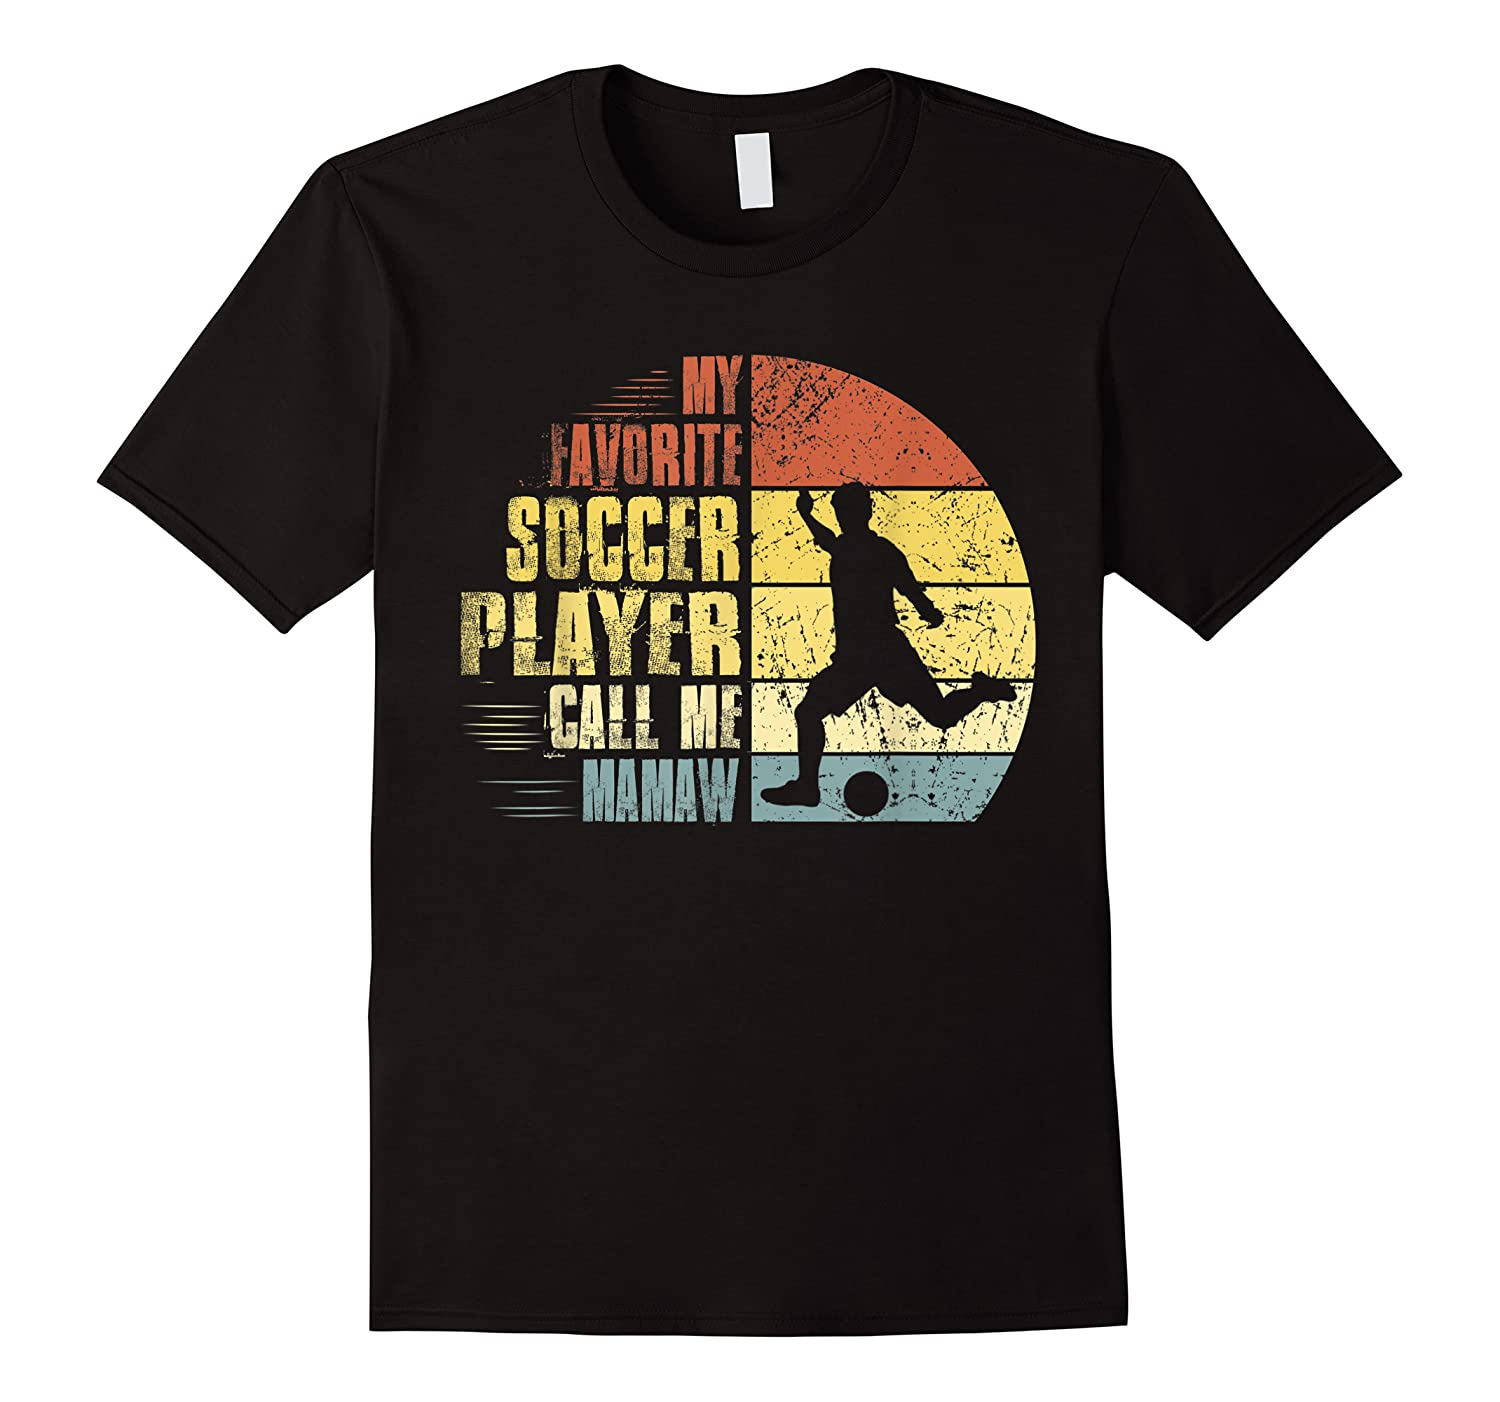 Vintage My Favorite Soccer Player Calls Me Mamaw Shirts